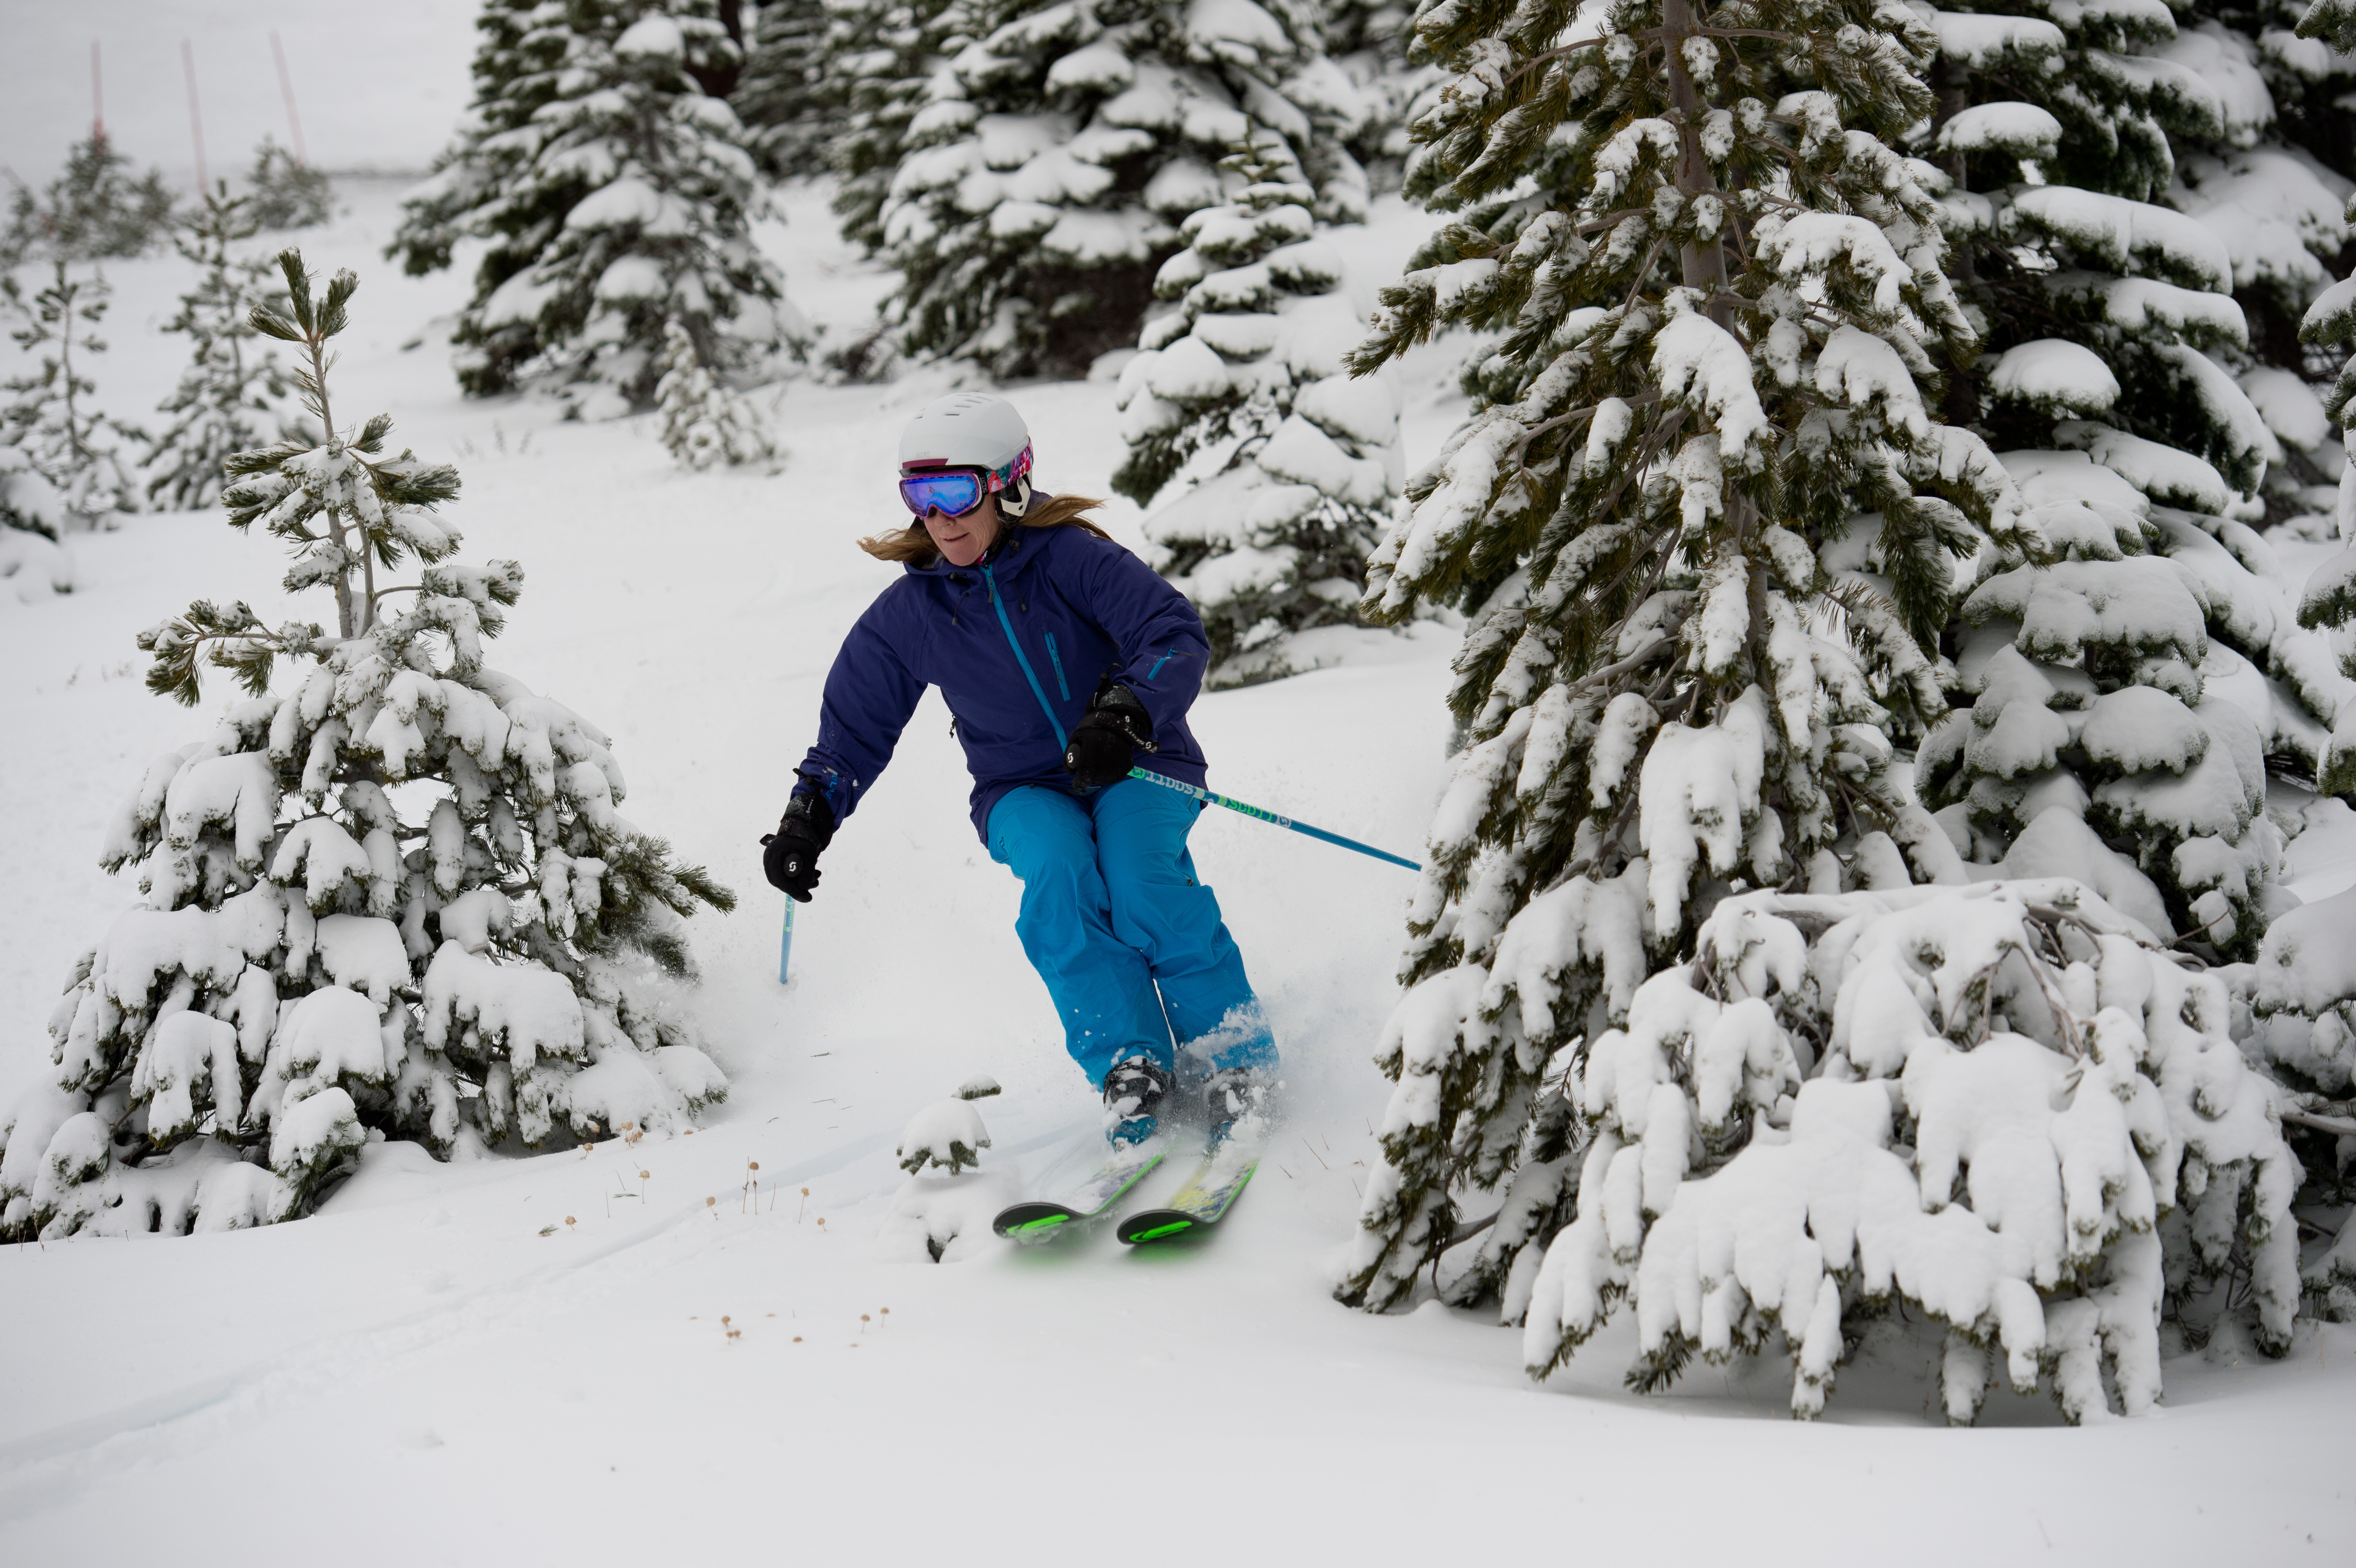 A skier glides through the trees at Squaw Valley, where the slopes are expected to receive another 2 feet of snow by Thursday. (Squaw Valley photo)